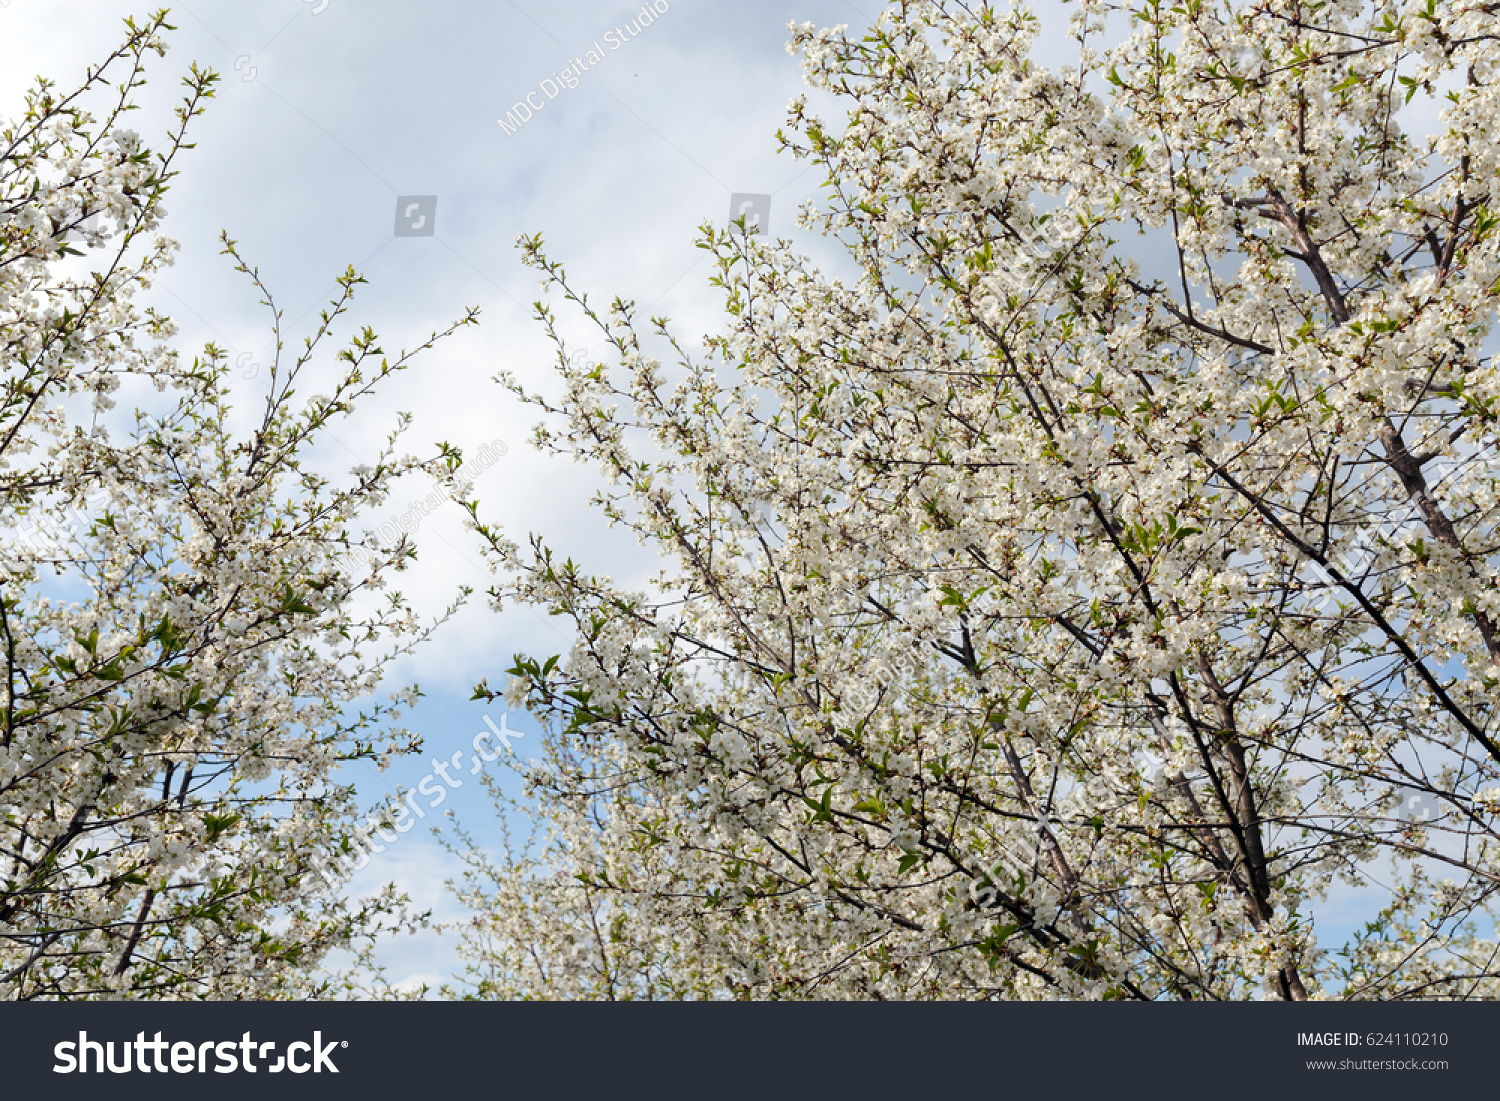 Blossom Cherry Trees White Flowers Spring Stock Photo Royalty Free